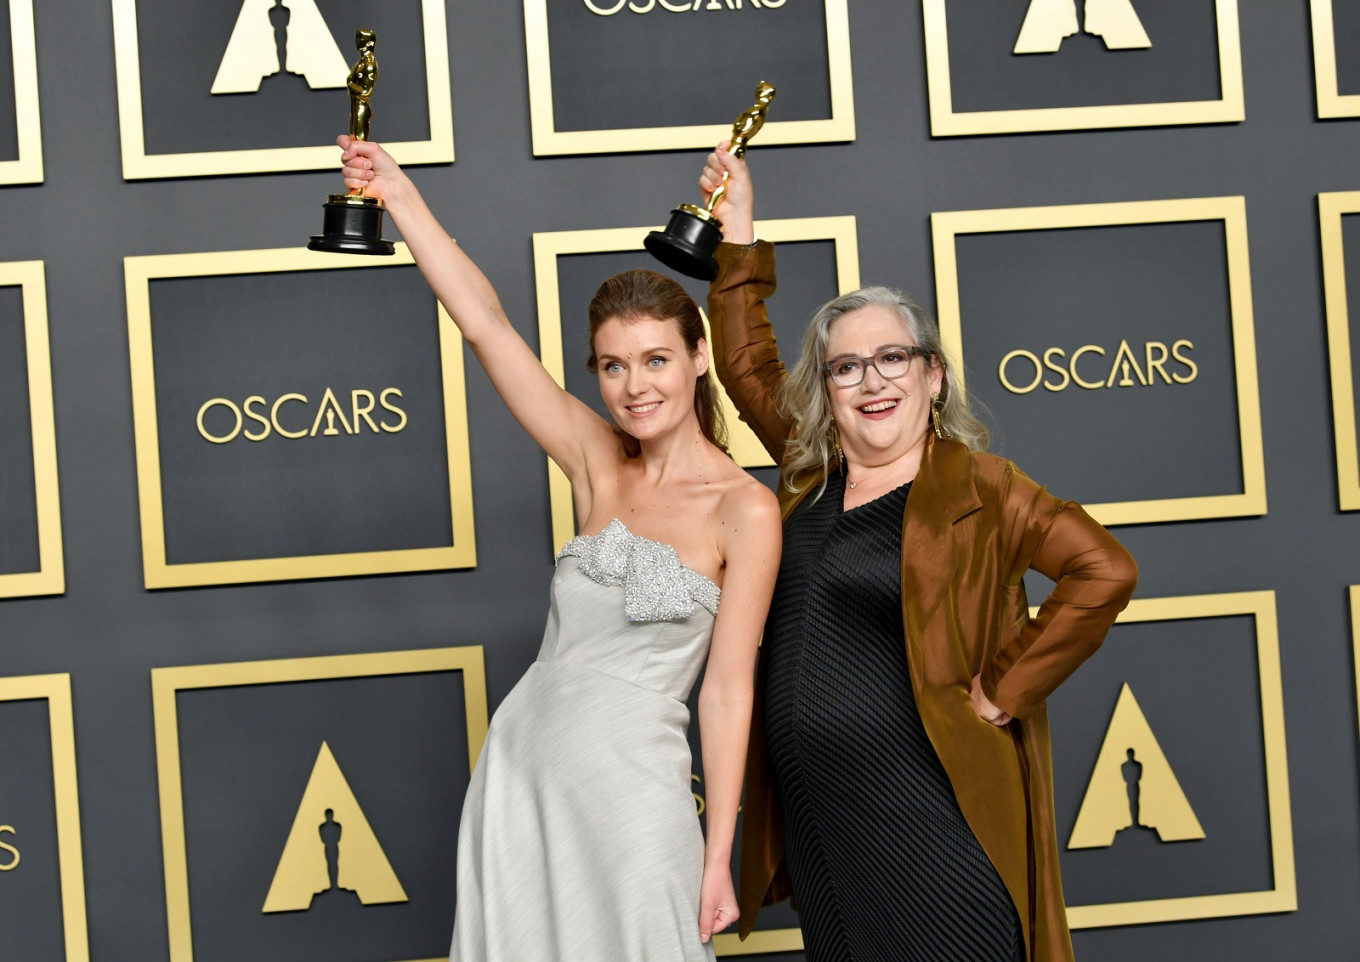 Afghans celebrate 'Skateistan' victory at the Oscars